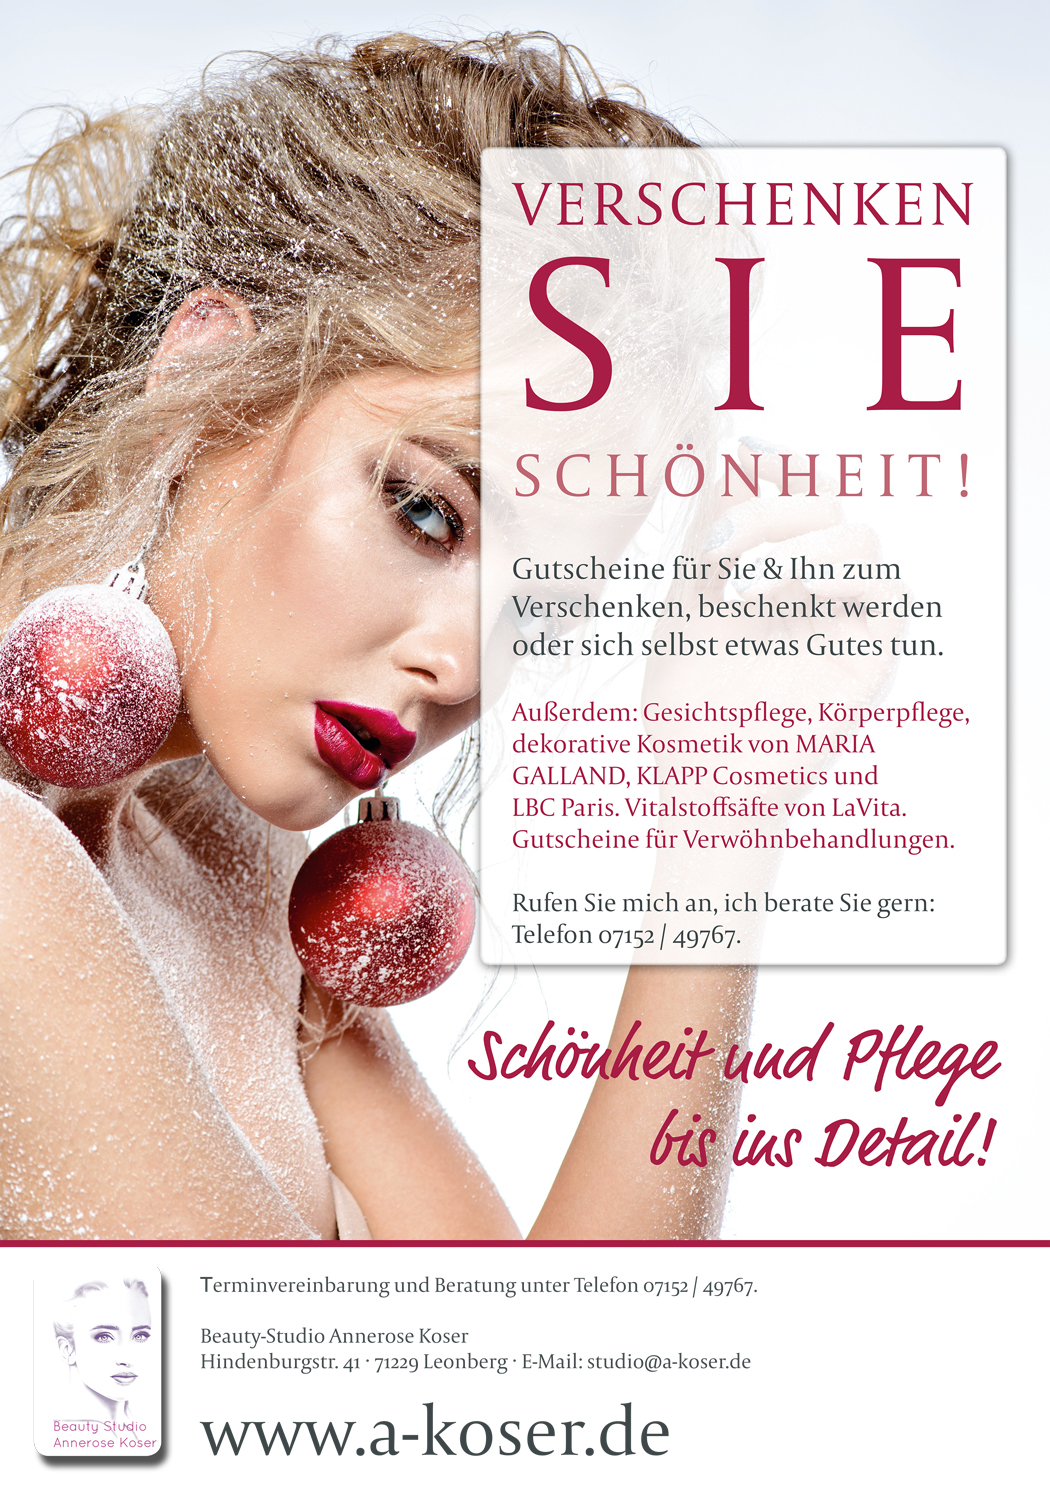 Flyer mit Frau in winterlicher Dekoration